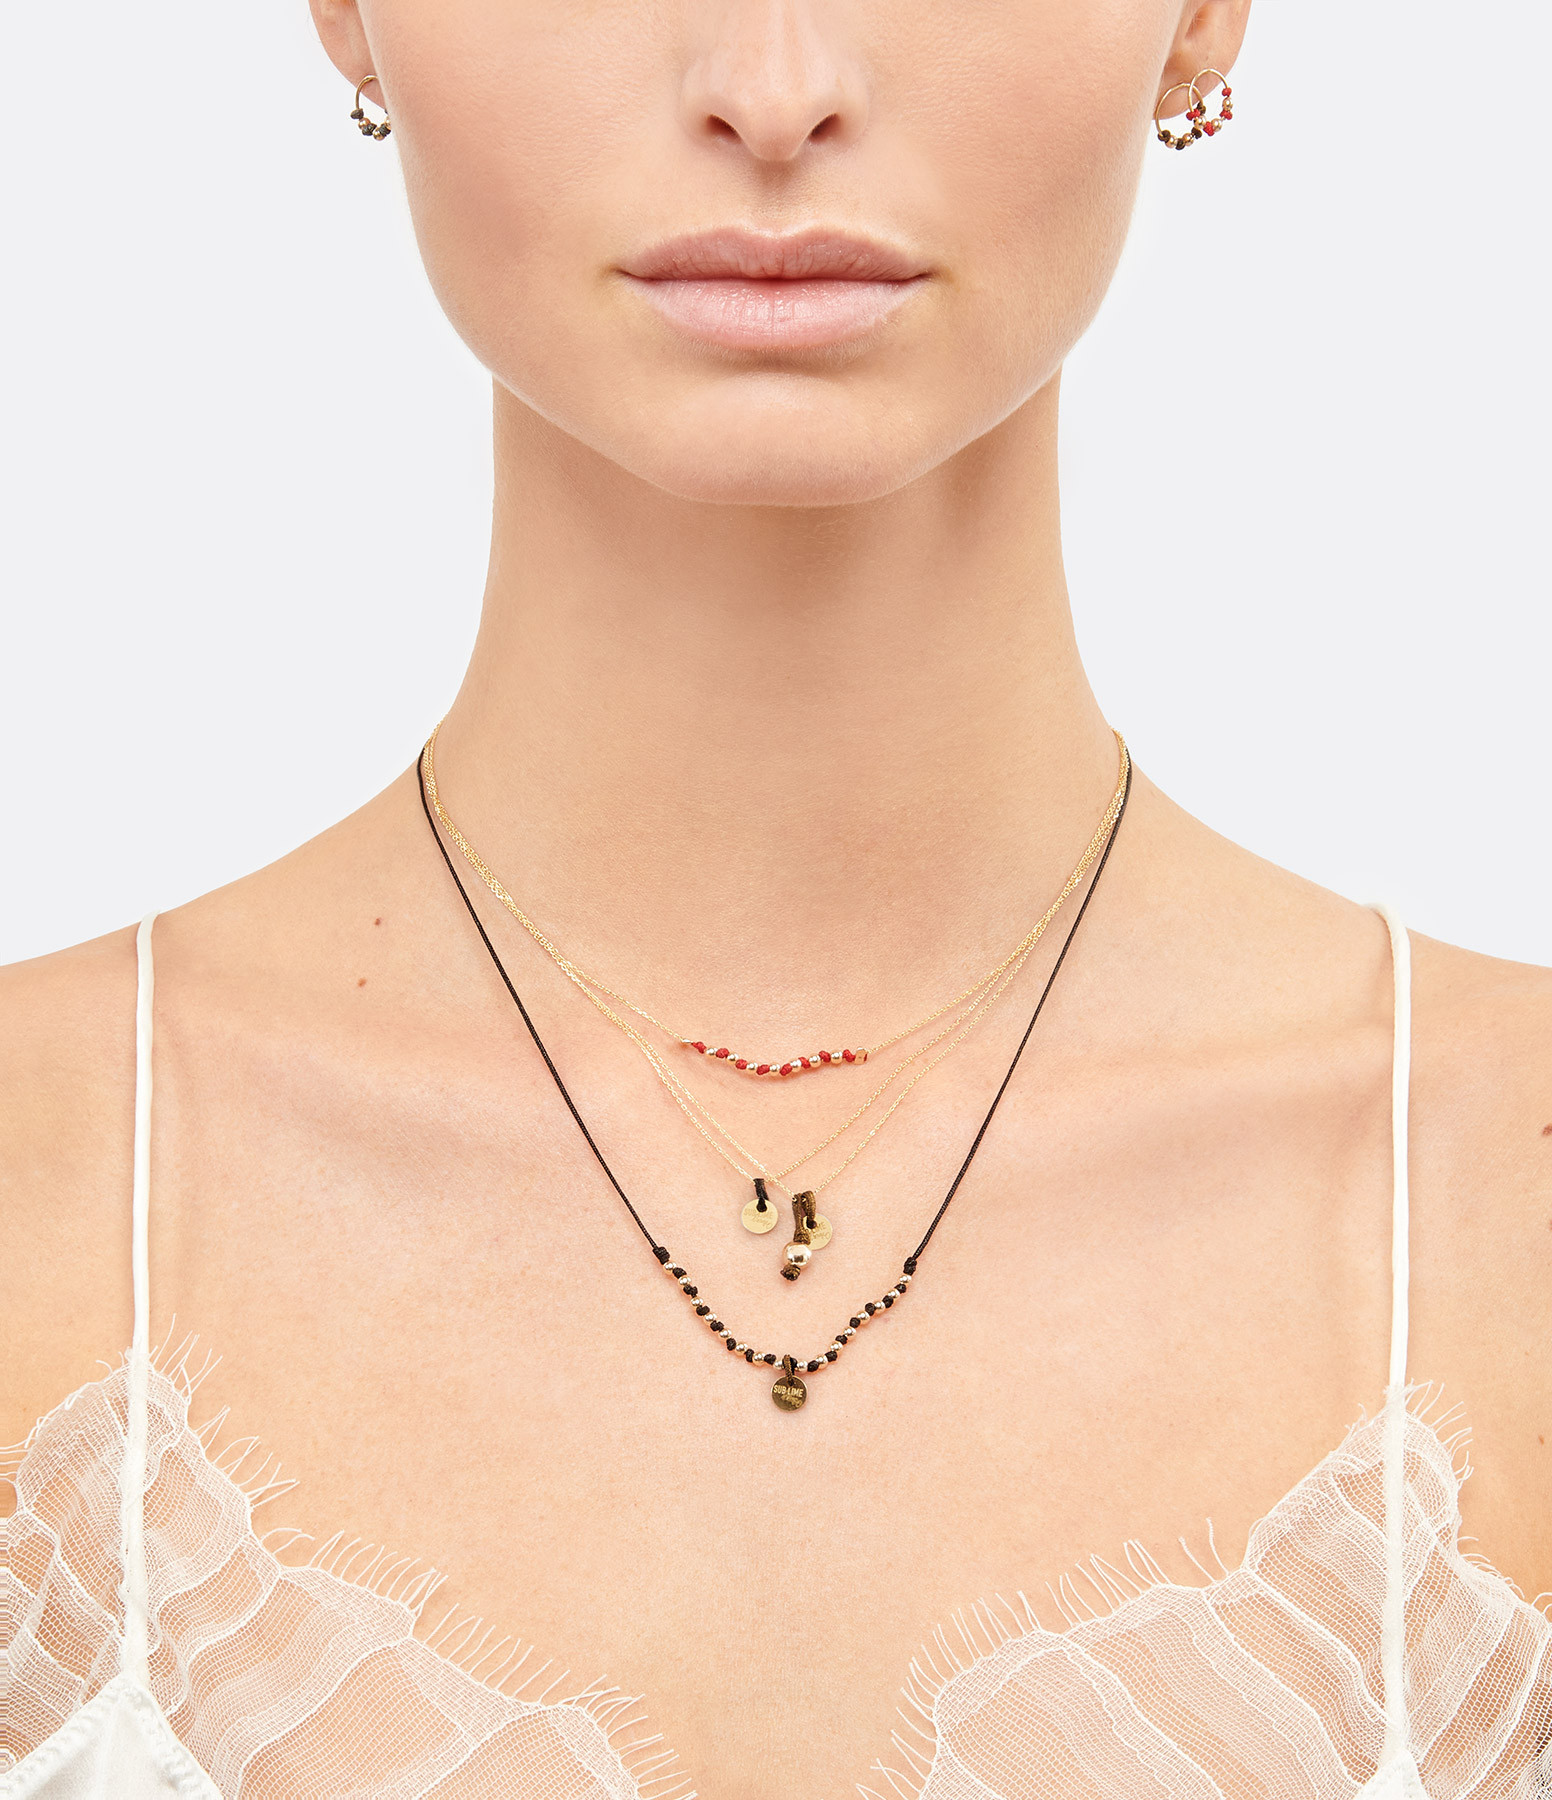 LSONGE - Collier Sublime M Comme Méditer Maxi Perle Taupe O